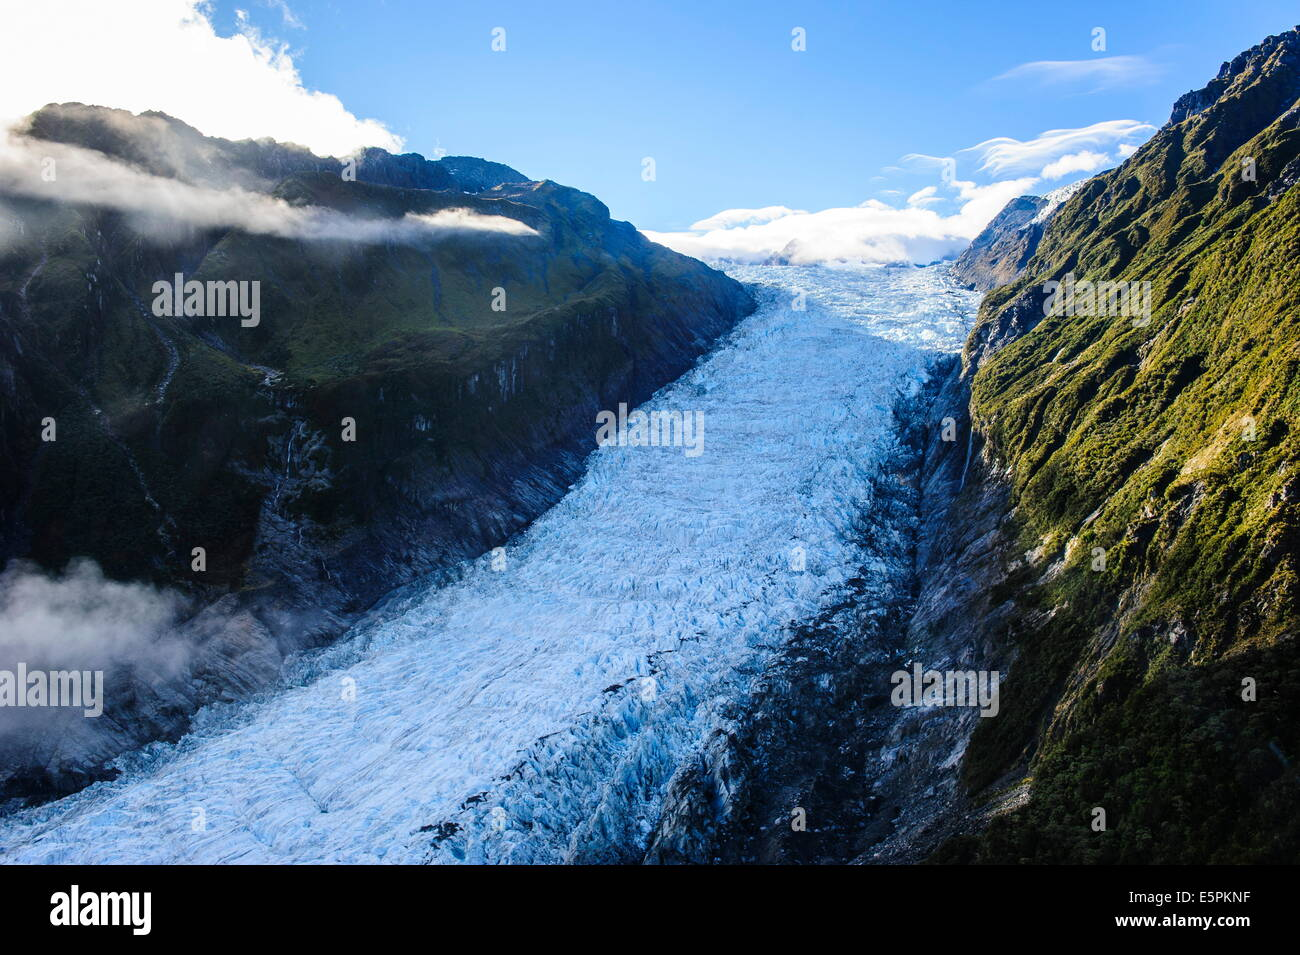 Aerial of Fox Glacier, Westland Tai Poutini National Park, South Island, New Zealand, Pacific - Stock Image